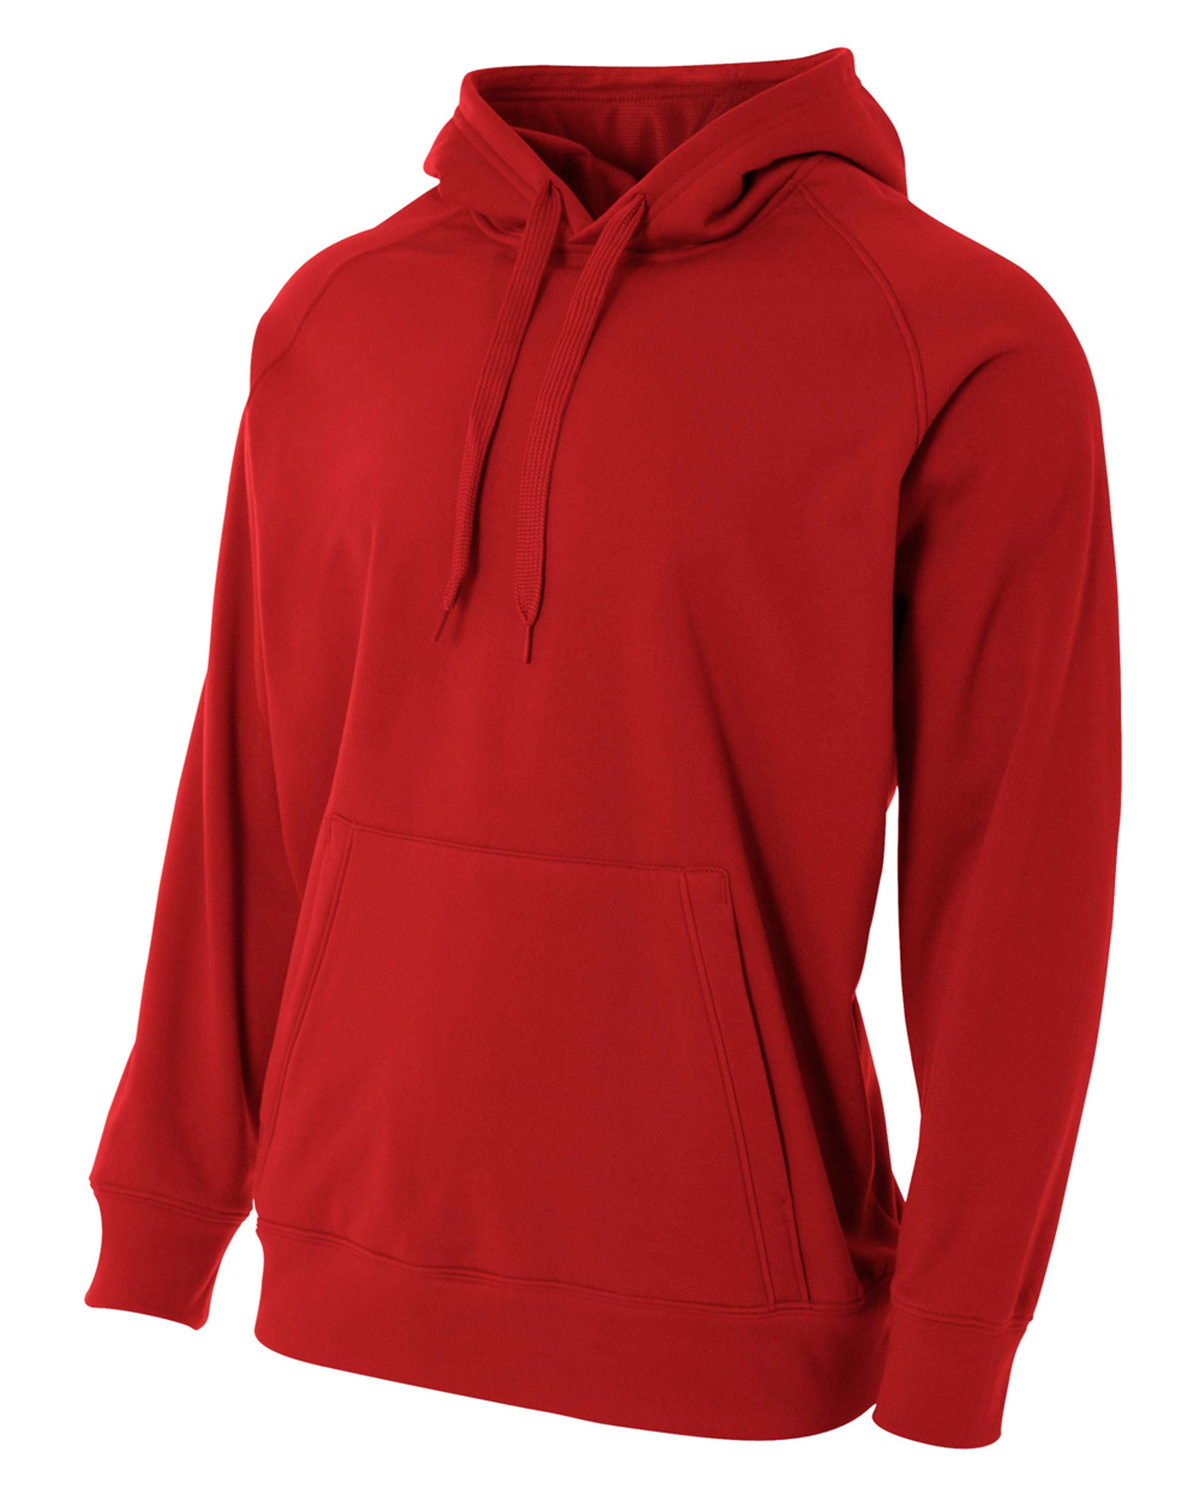 A4 Drop Ship N4237 - Men's Solid Tech Fleece Hoodie